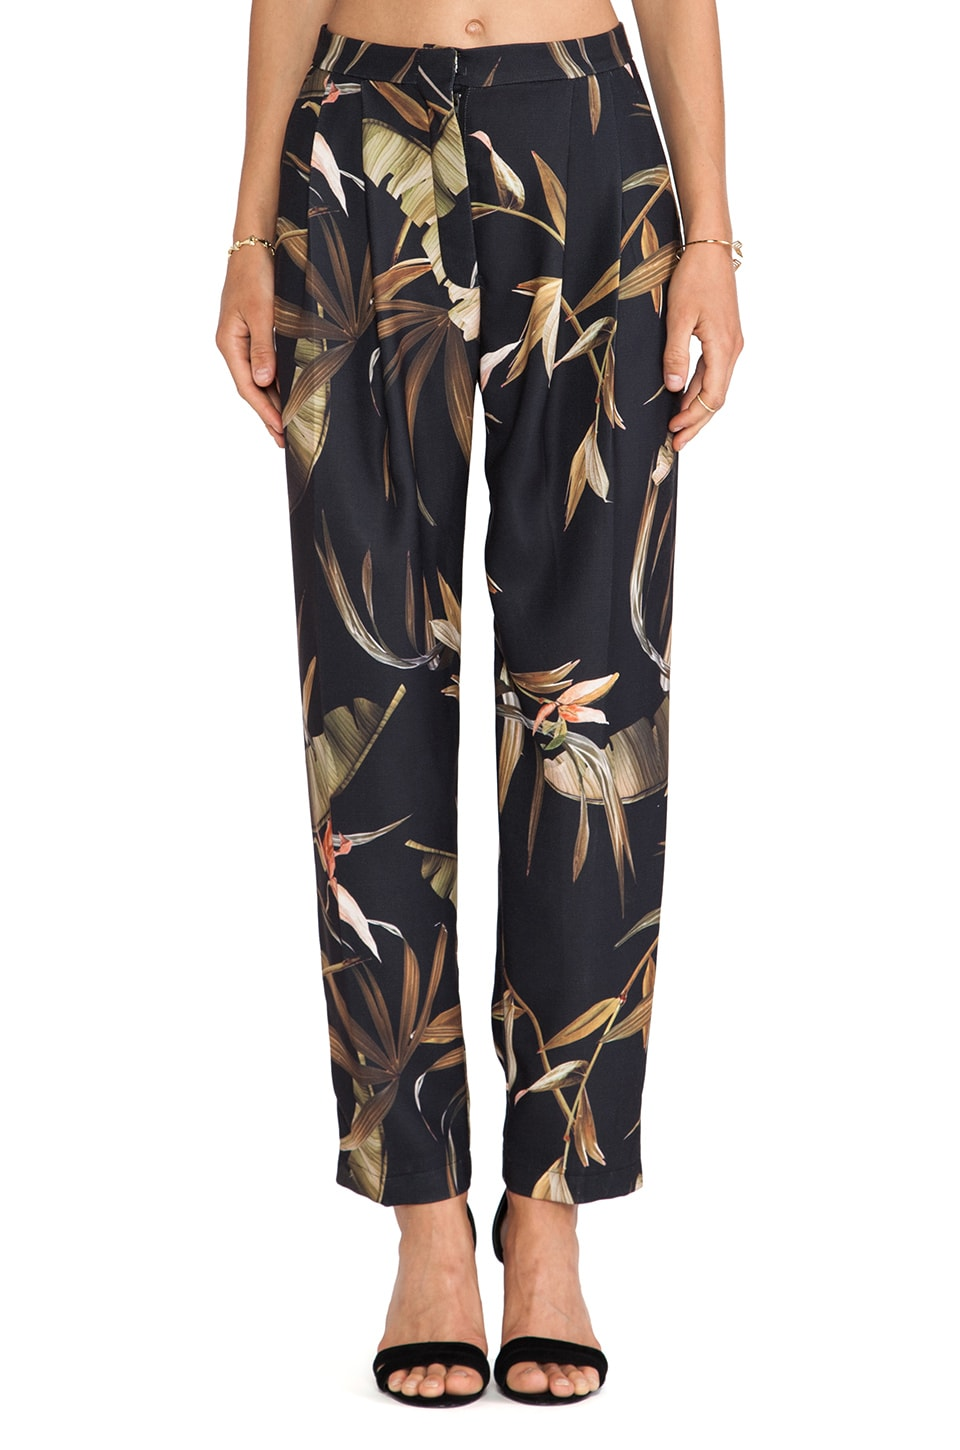 Shona Joy Lucid State Cocoon Pant in Multi